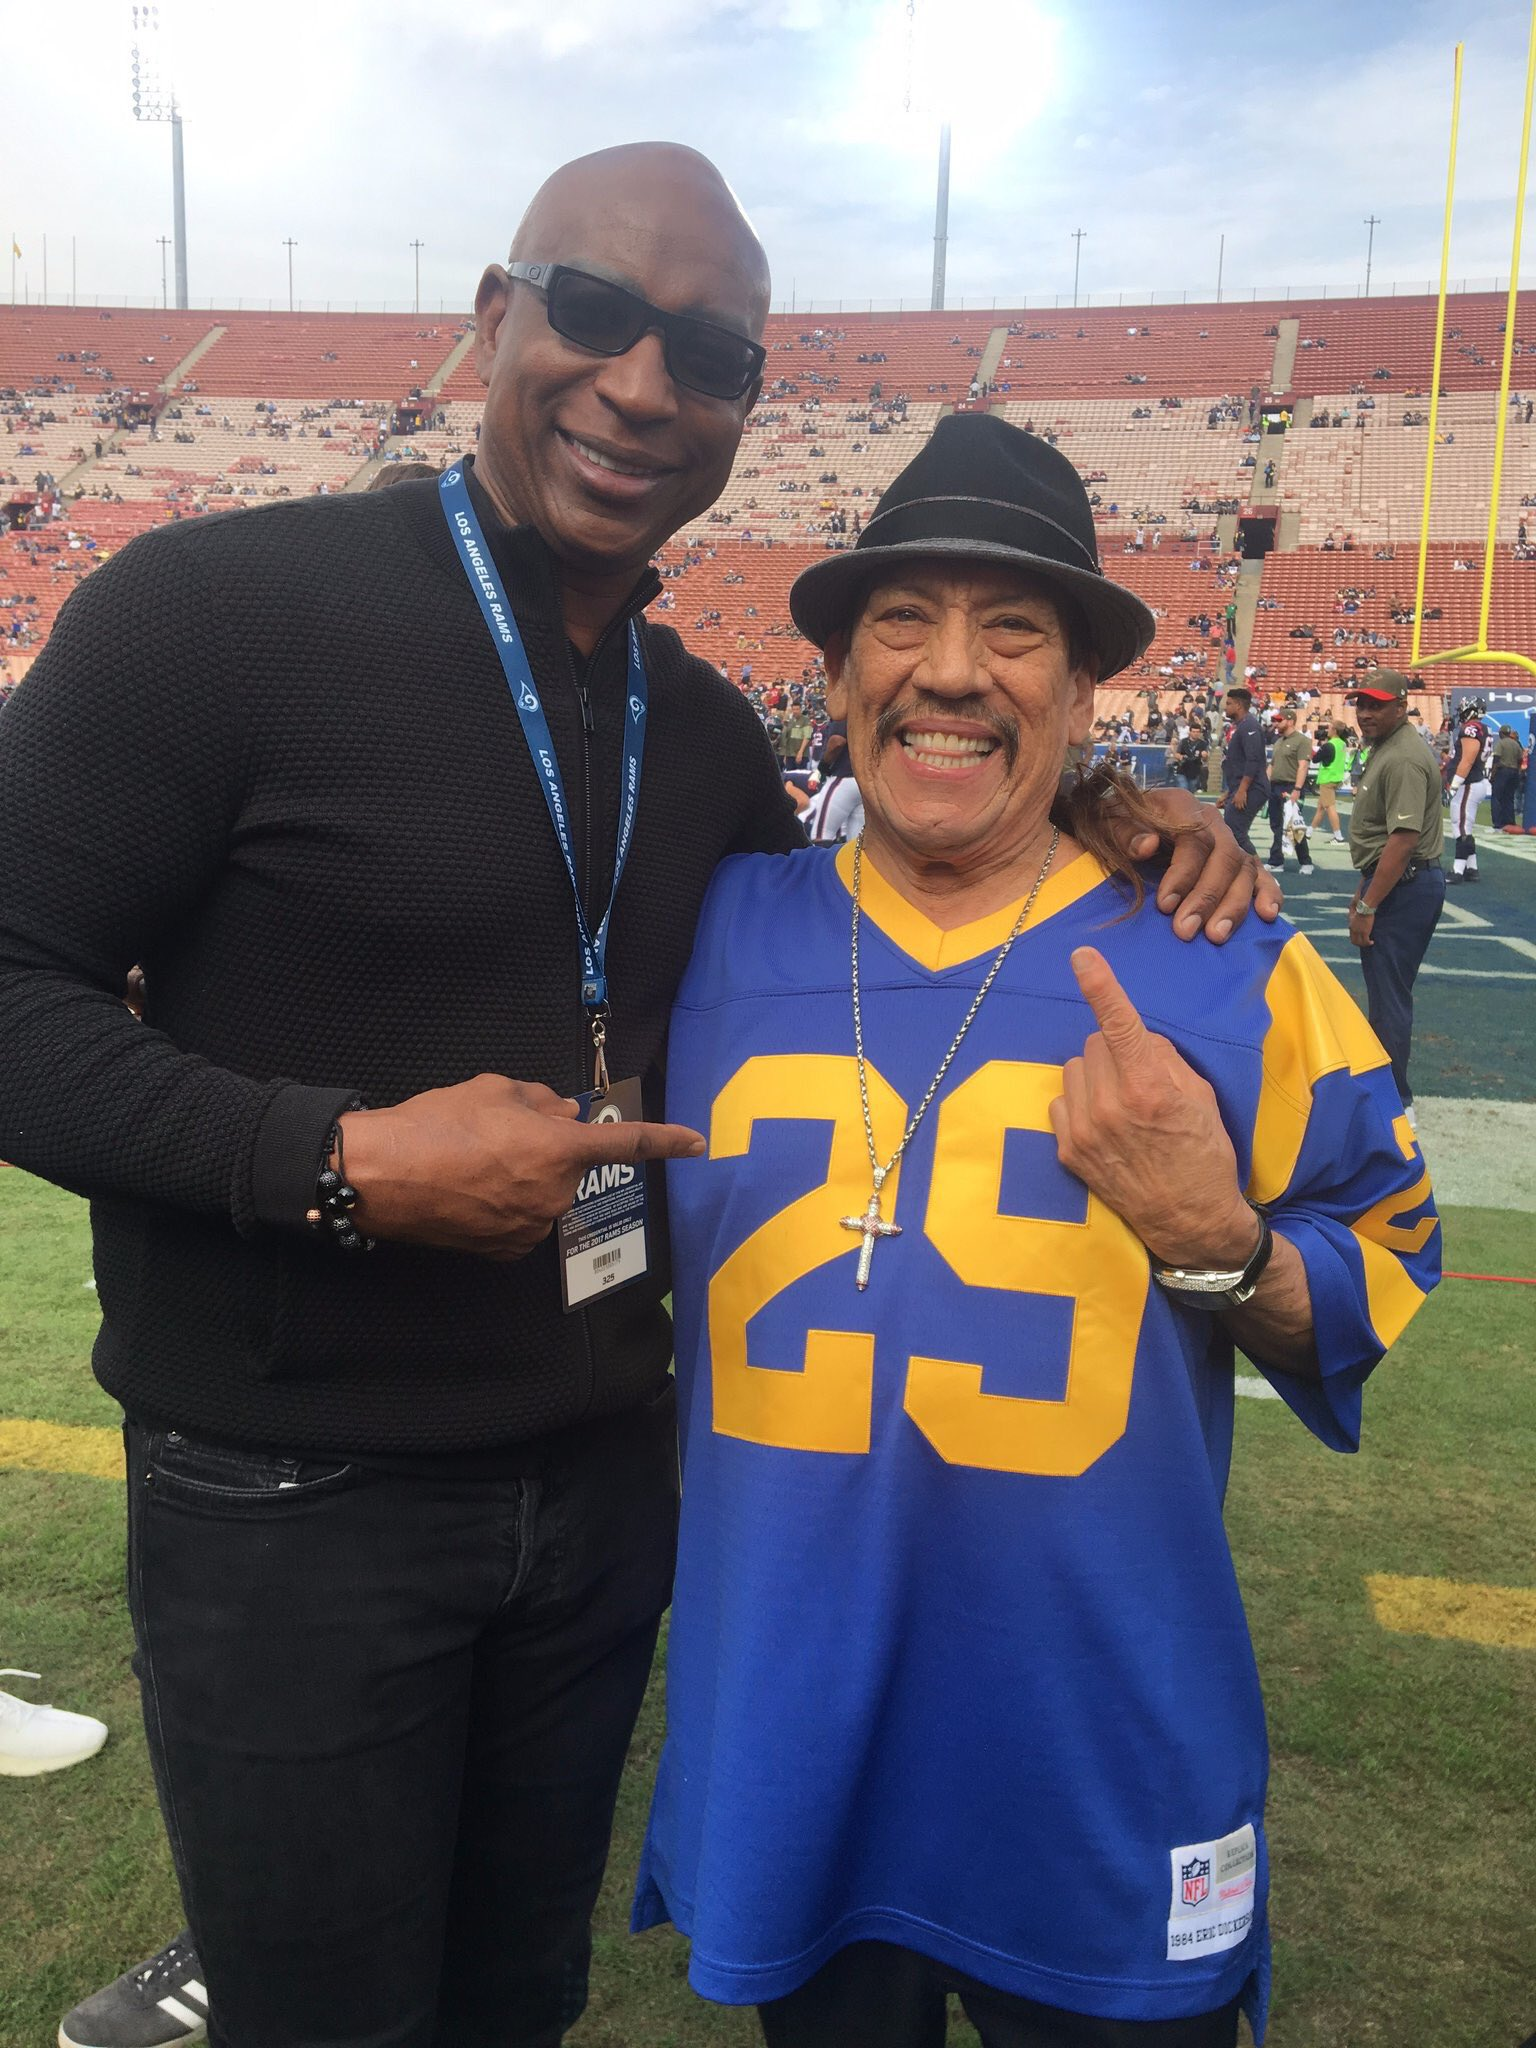 Name a more iconic duo! ��@officialDannyT @EricDickerson @RamsNFL https://t.co/KCgQDEM3Kq